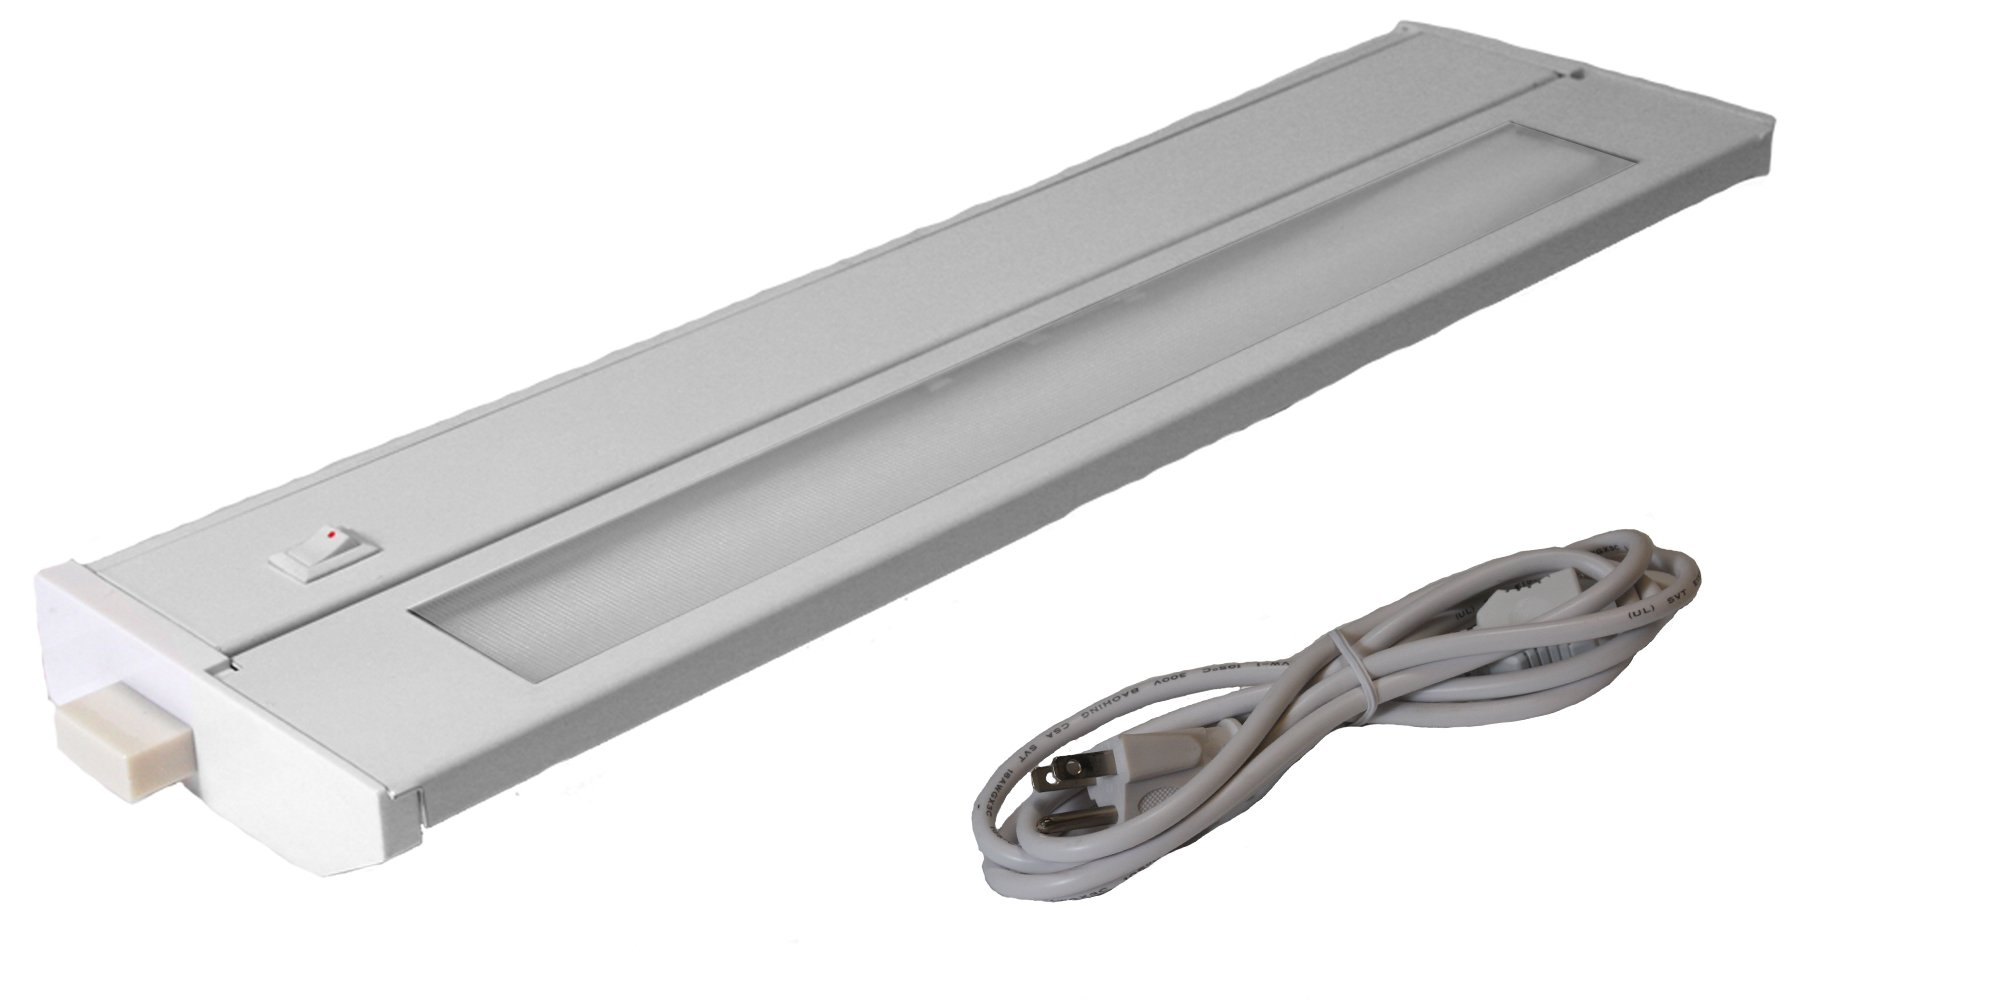 American Lighting 043T-14P-WH Hardwire Fluorescent Under Cabinet Lighting, 8-Watt Lamp with On/Off Switch, 120-Volt, White, 14-Inch